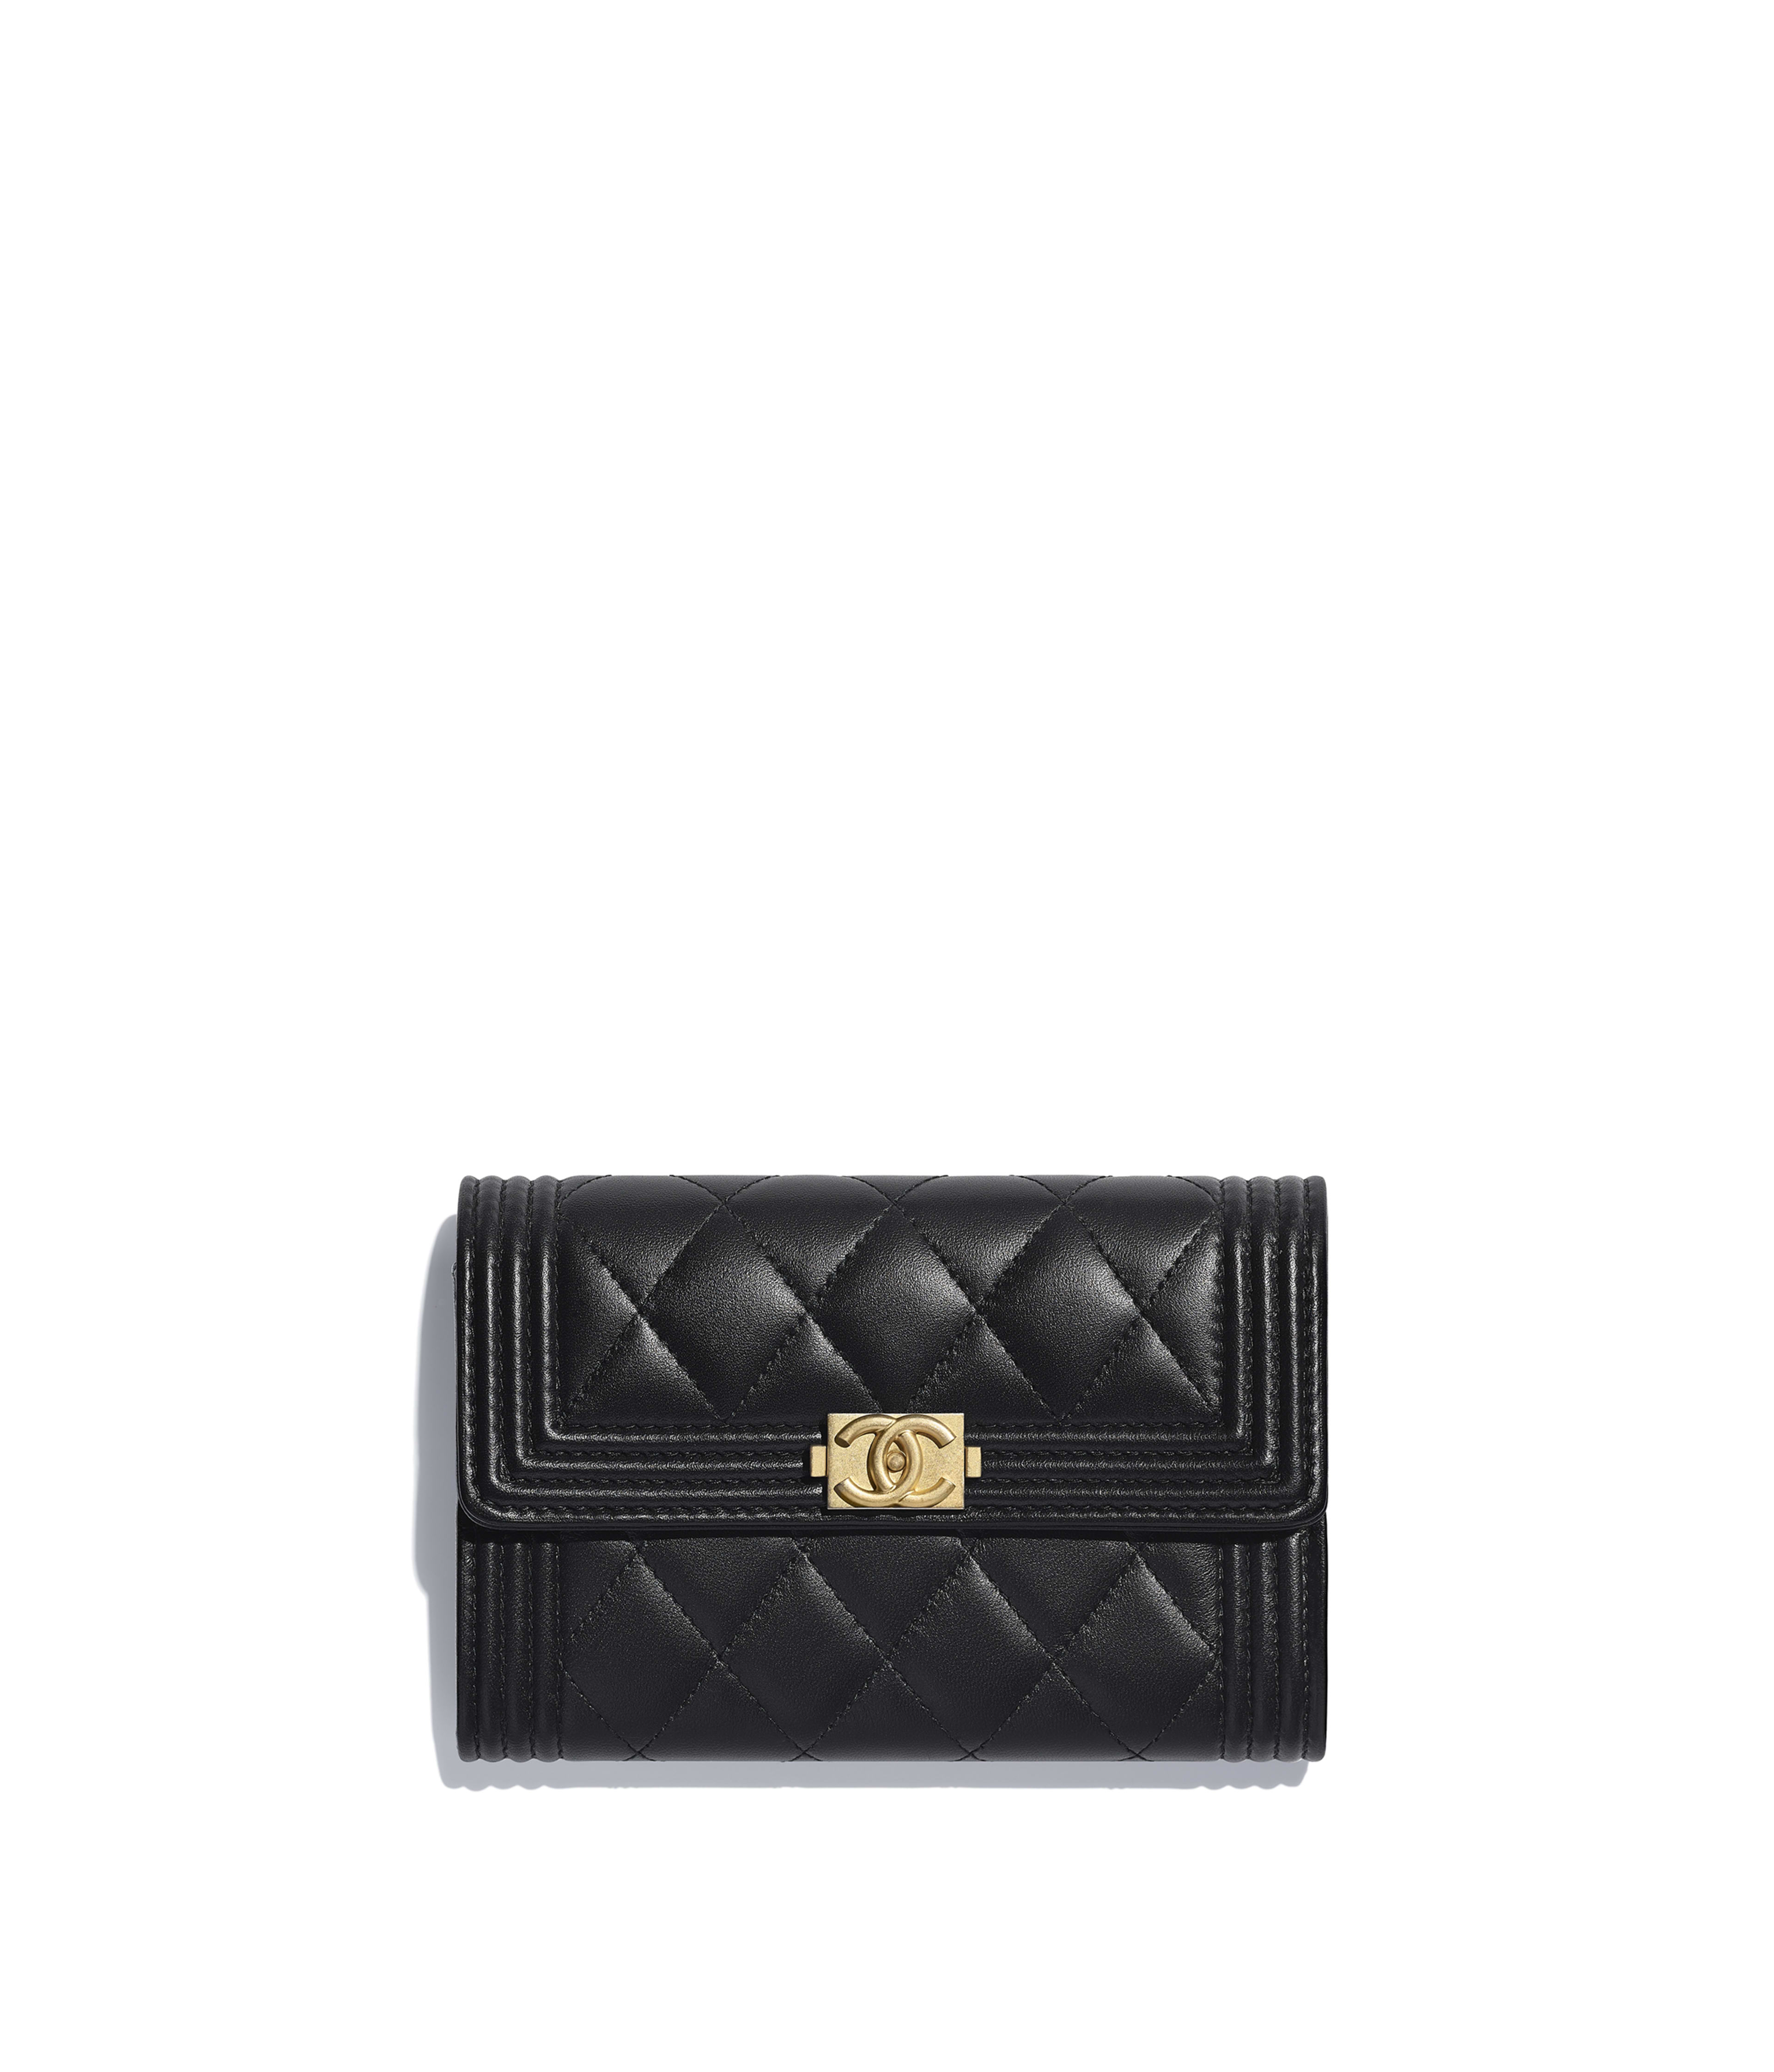 374063d5ccbf BOY CHANEL Flap Wallet Lambskin & Gold-Tone Metal, Black Ref.  A84302Y0765994305